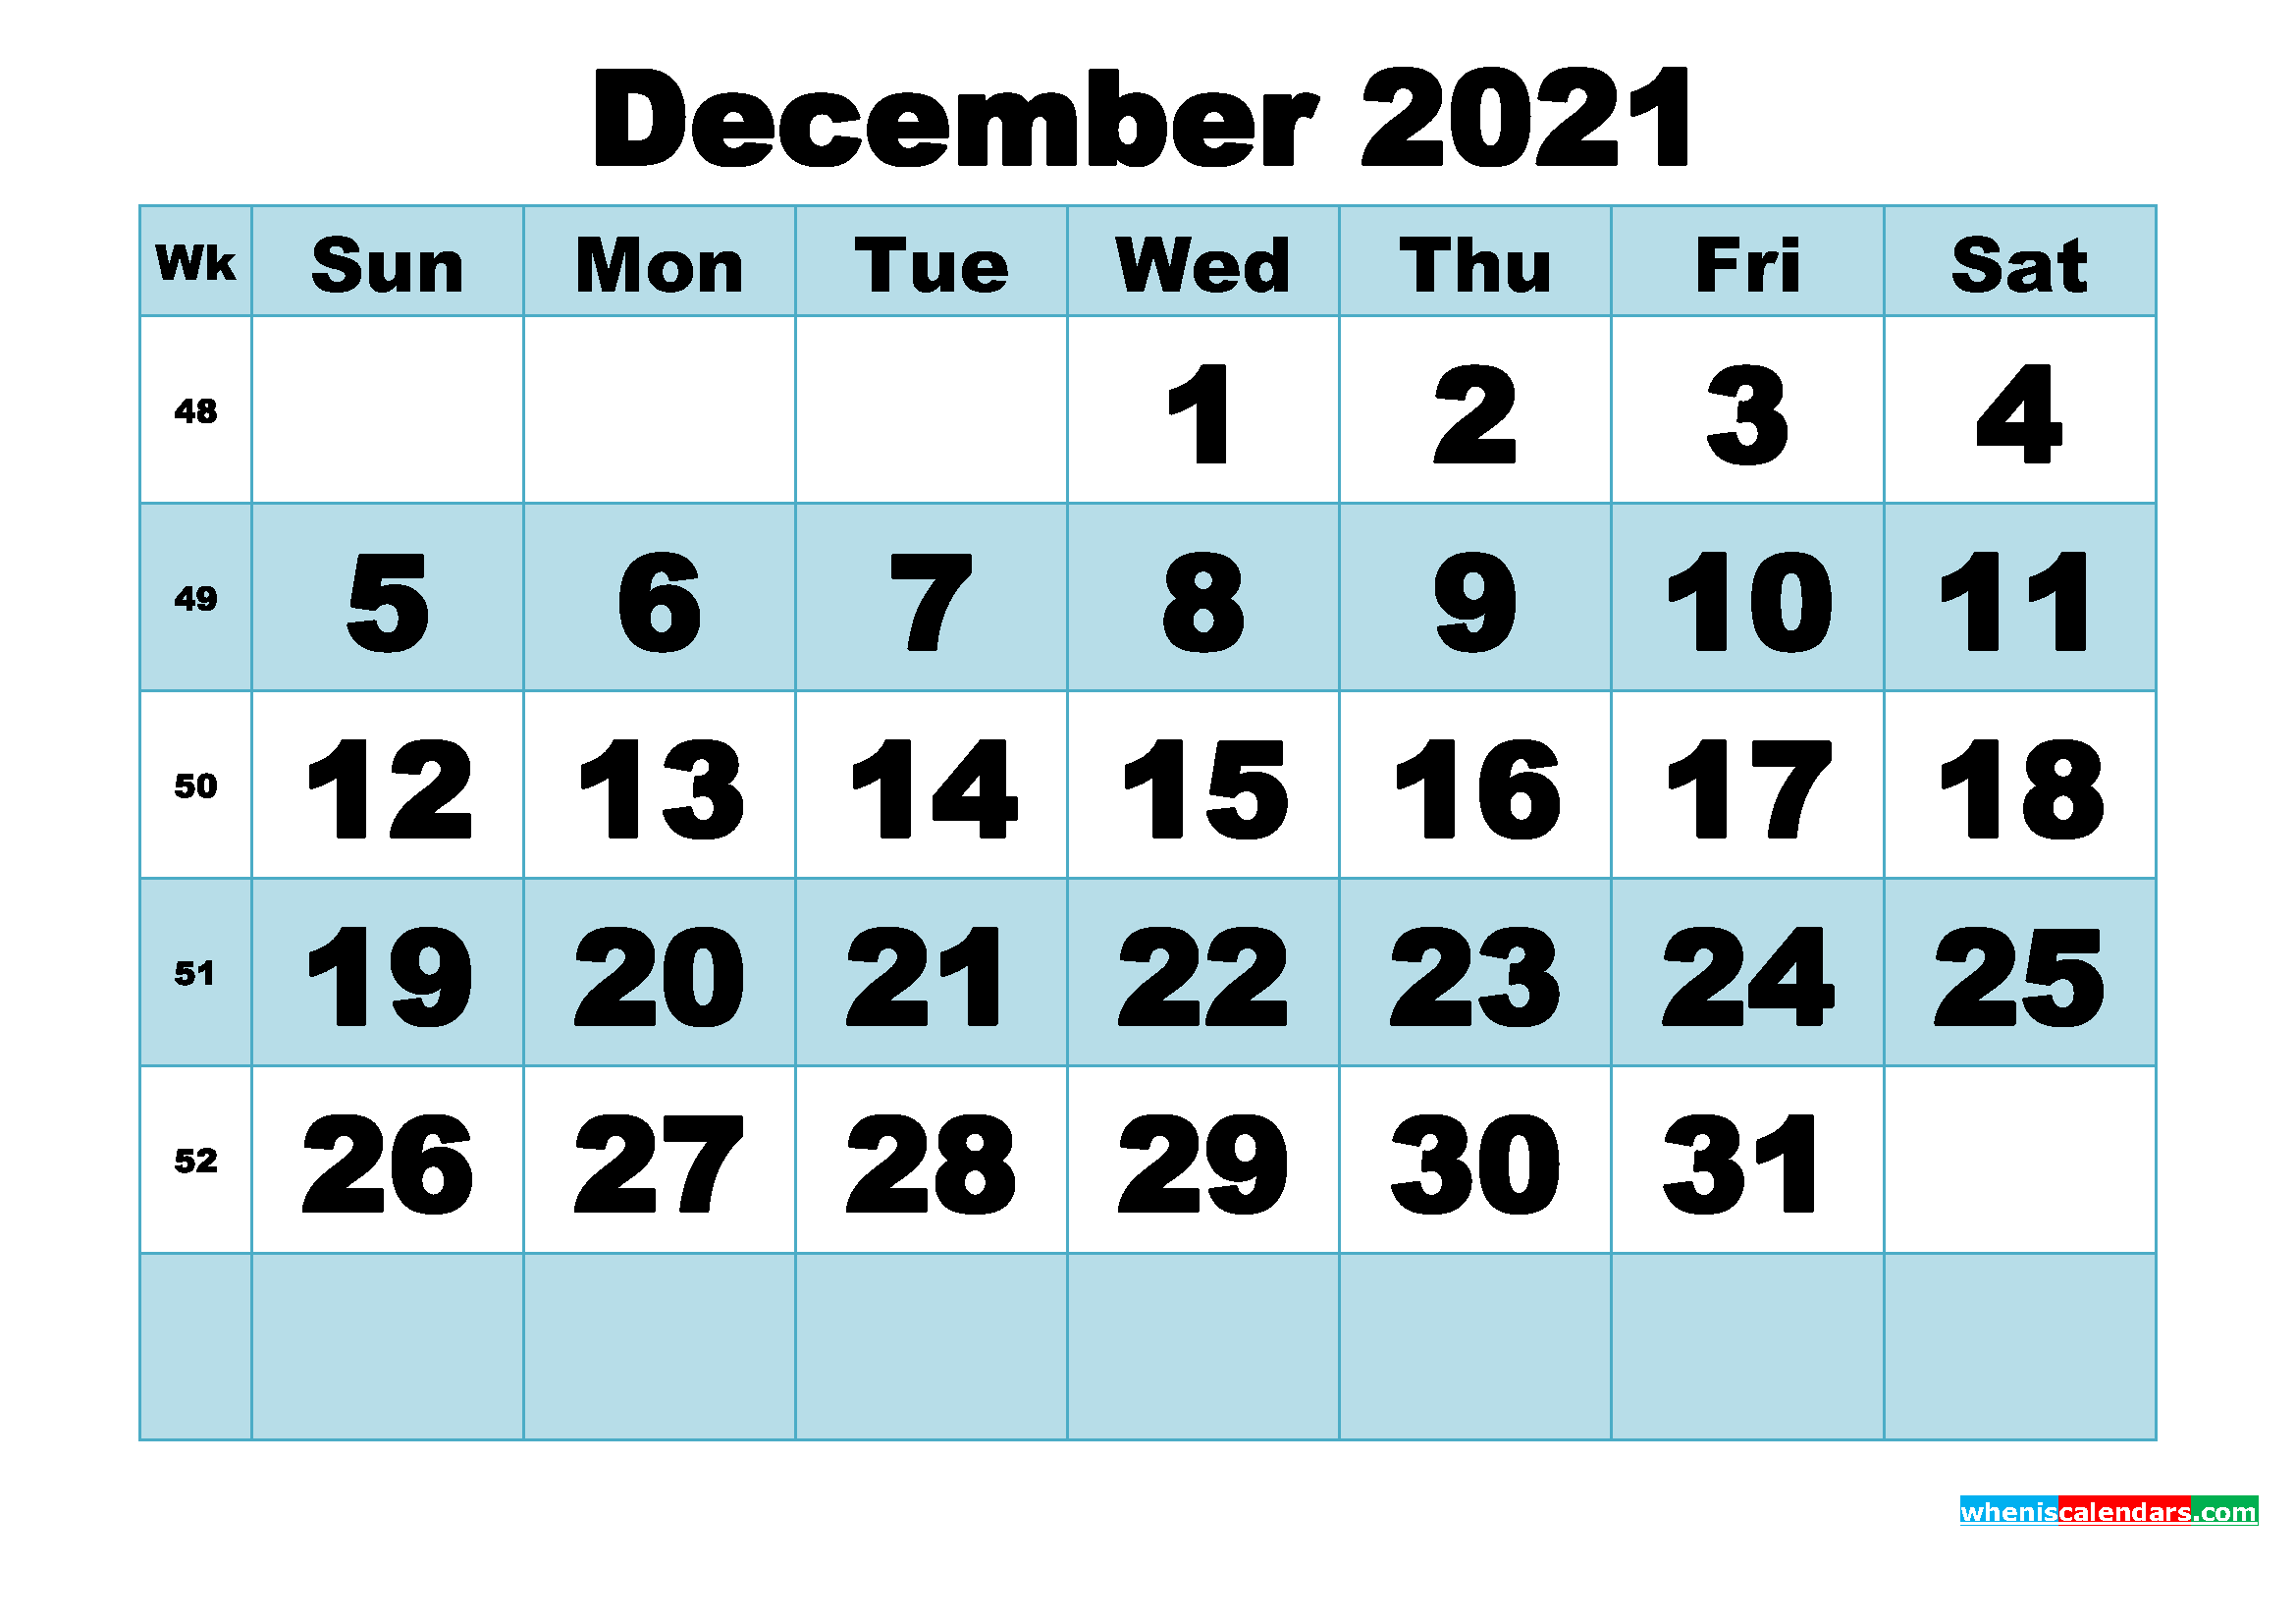 Free Printable December 2021 Calendar Word, PDF, Image